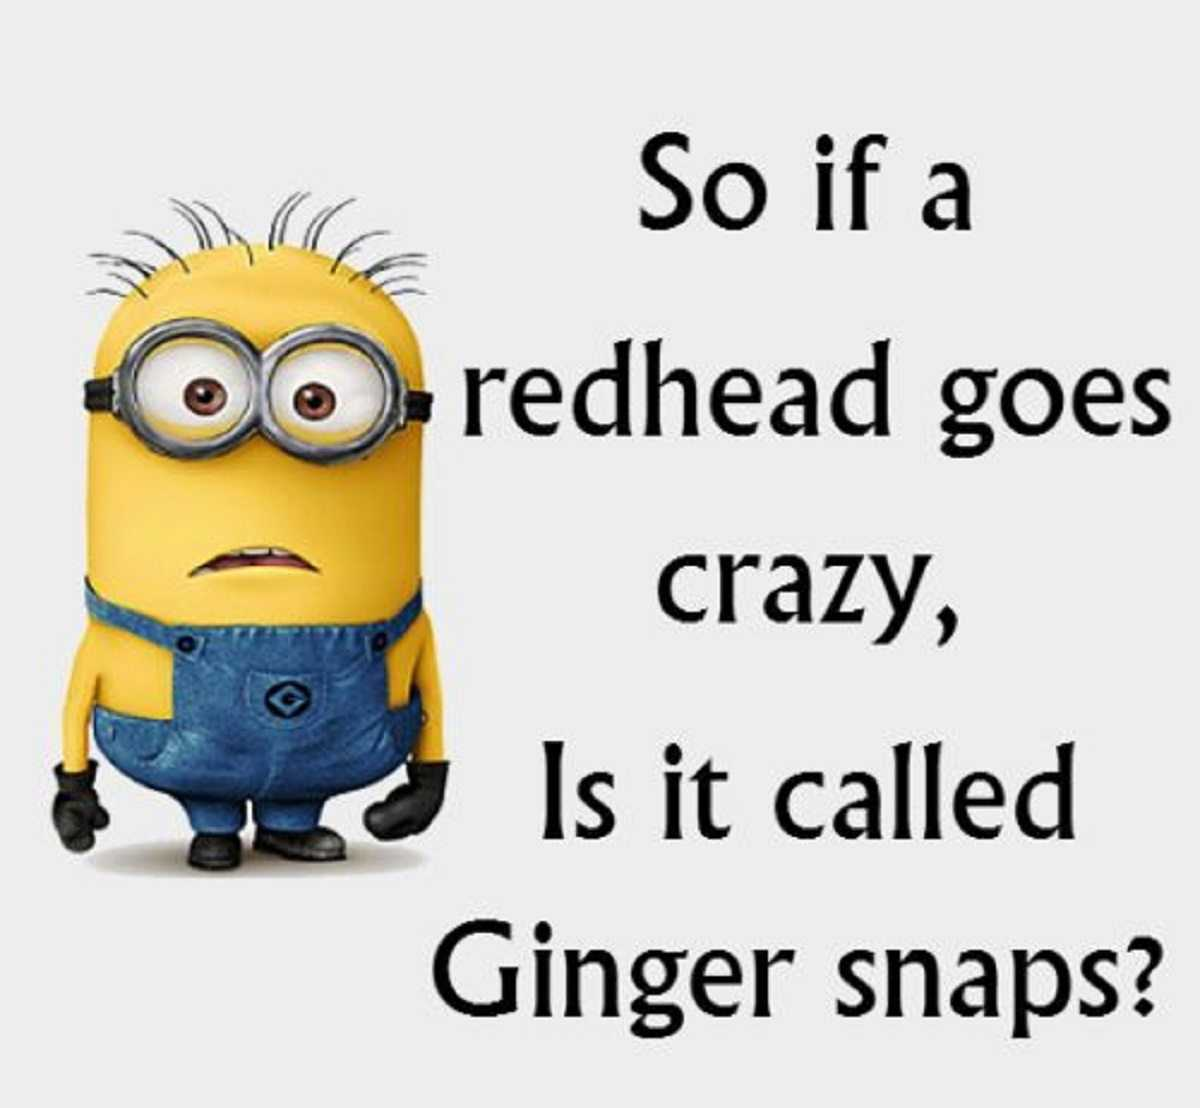 Funny Love Quotes Of The Day : Funny-Minion-Quotes-Of-The-Day-featured.jpg